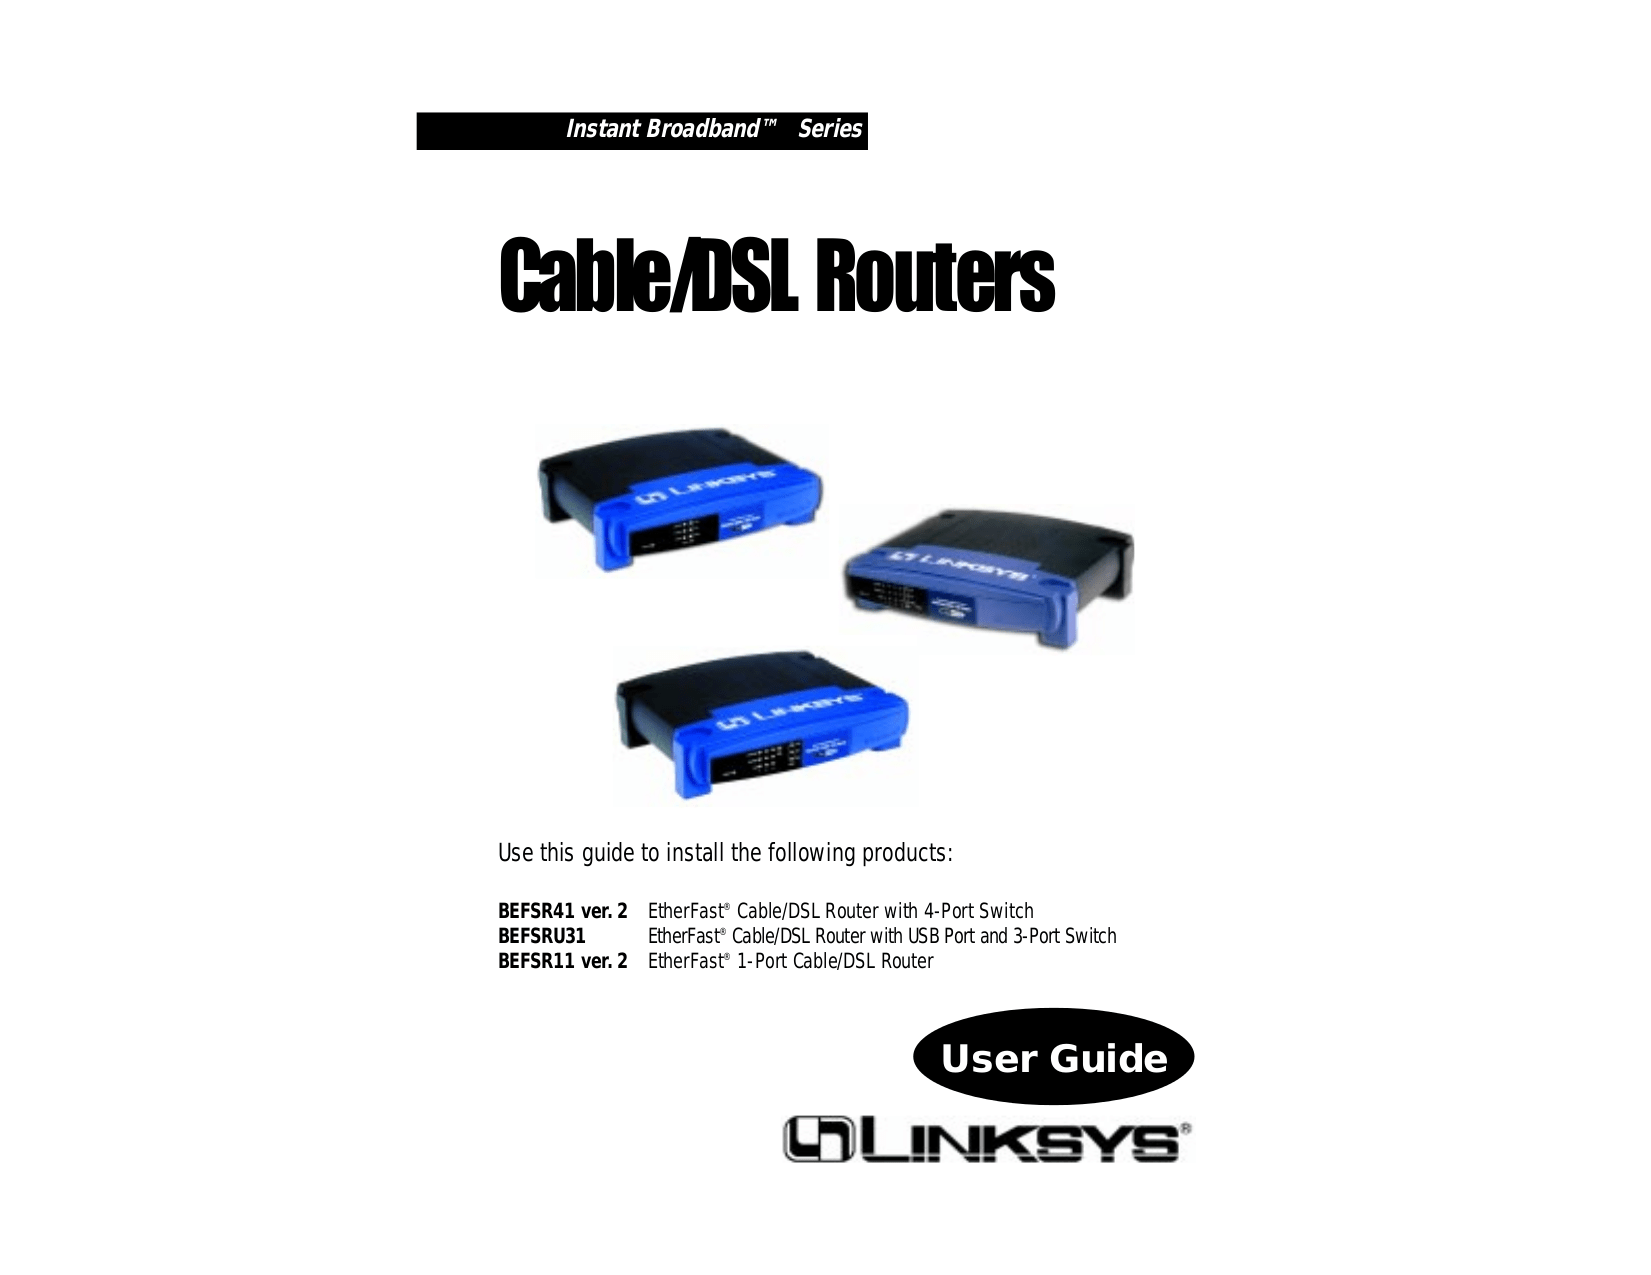 Download free pdf for Linksys BEFSR41 Router manual